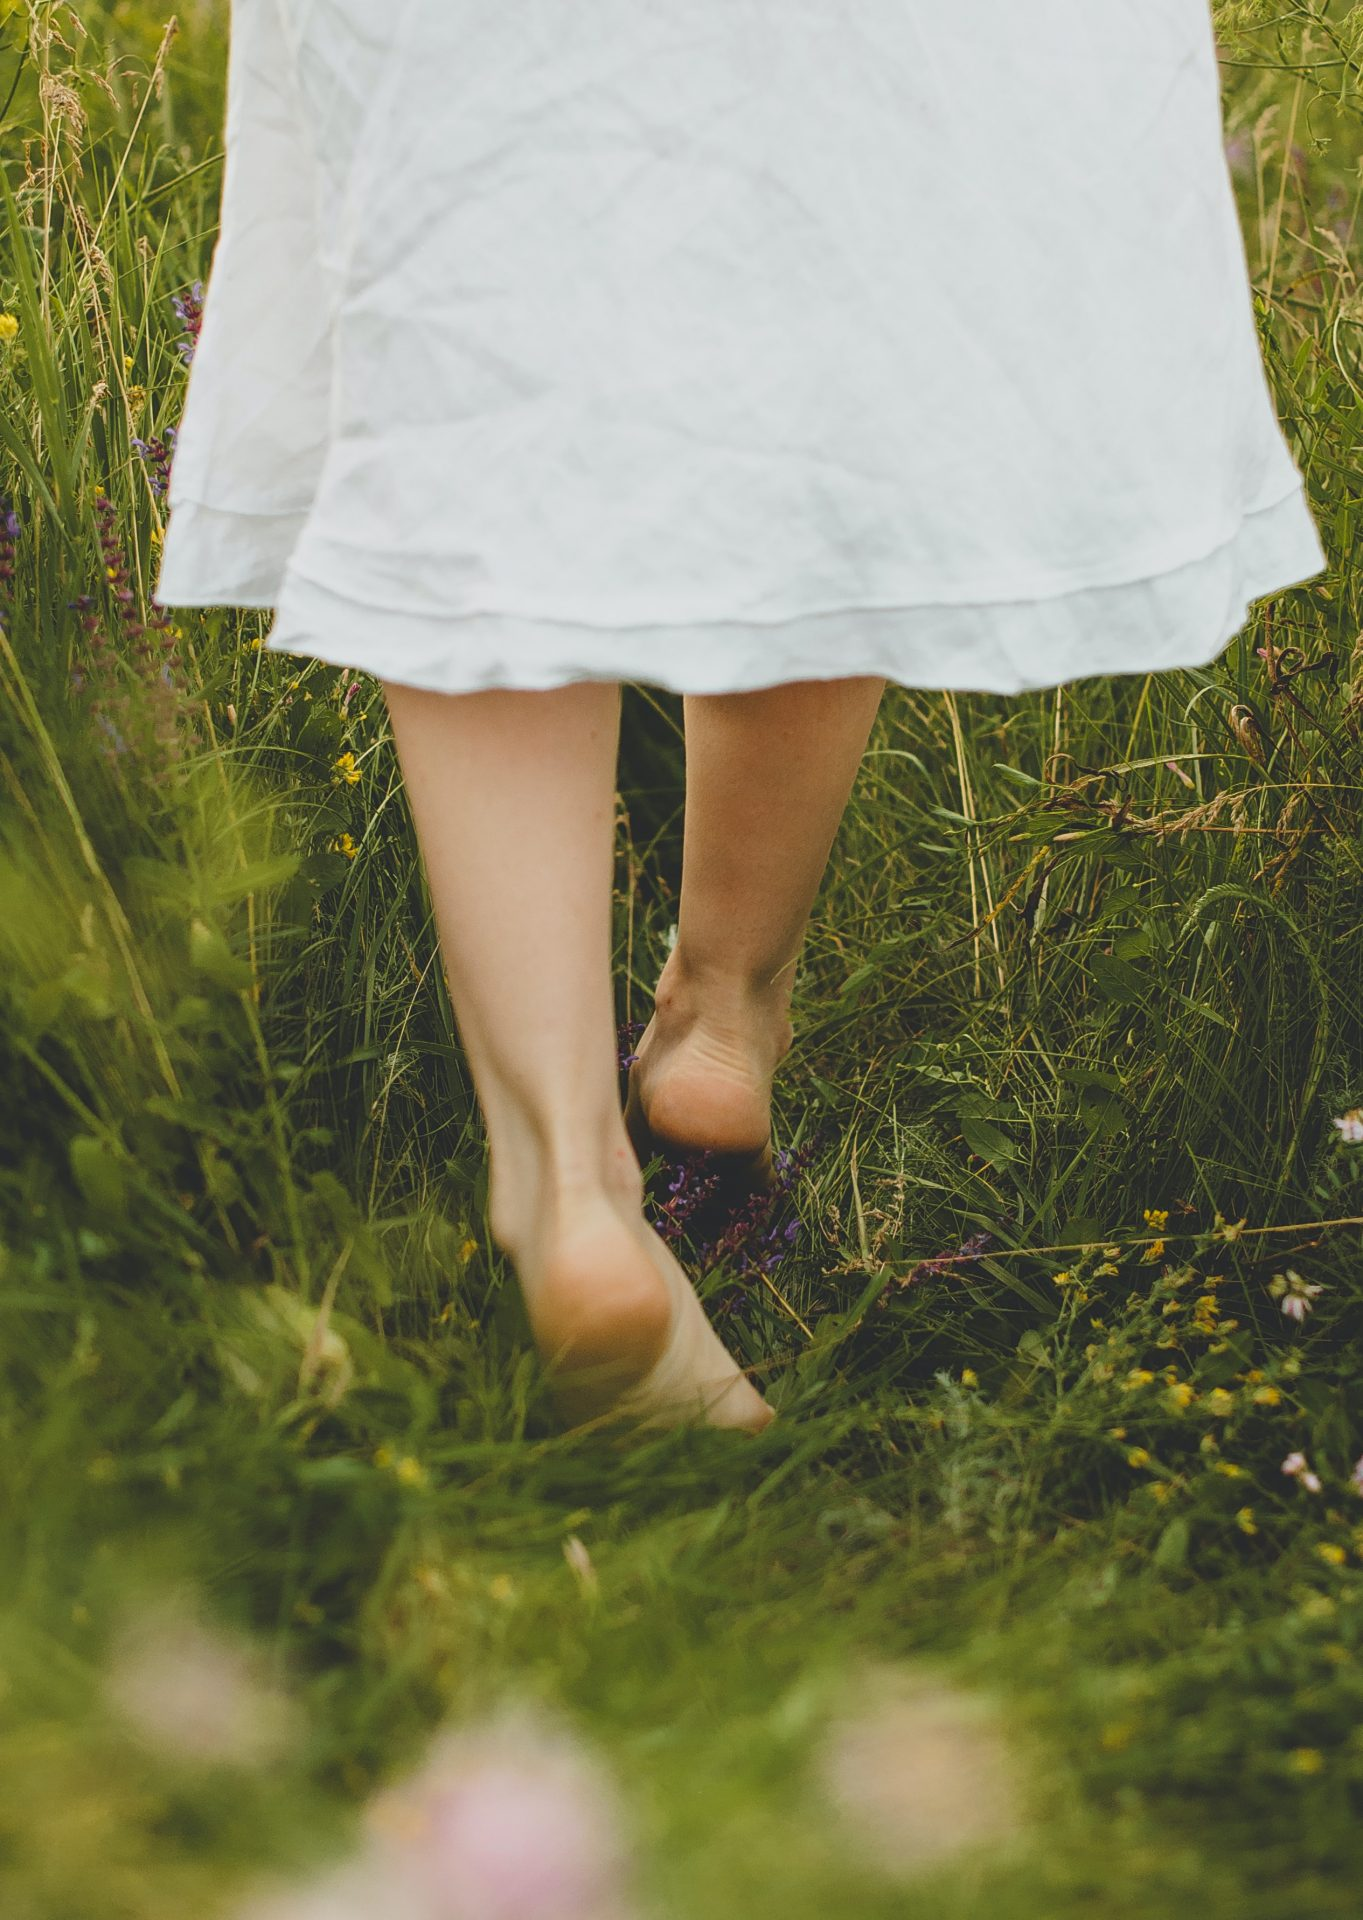 Successful-people-Morning-Routine-Ideas-Tips-To-Empower-Your-Day-Change-Your-Life-Barefoot-Walking-Grass